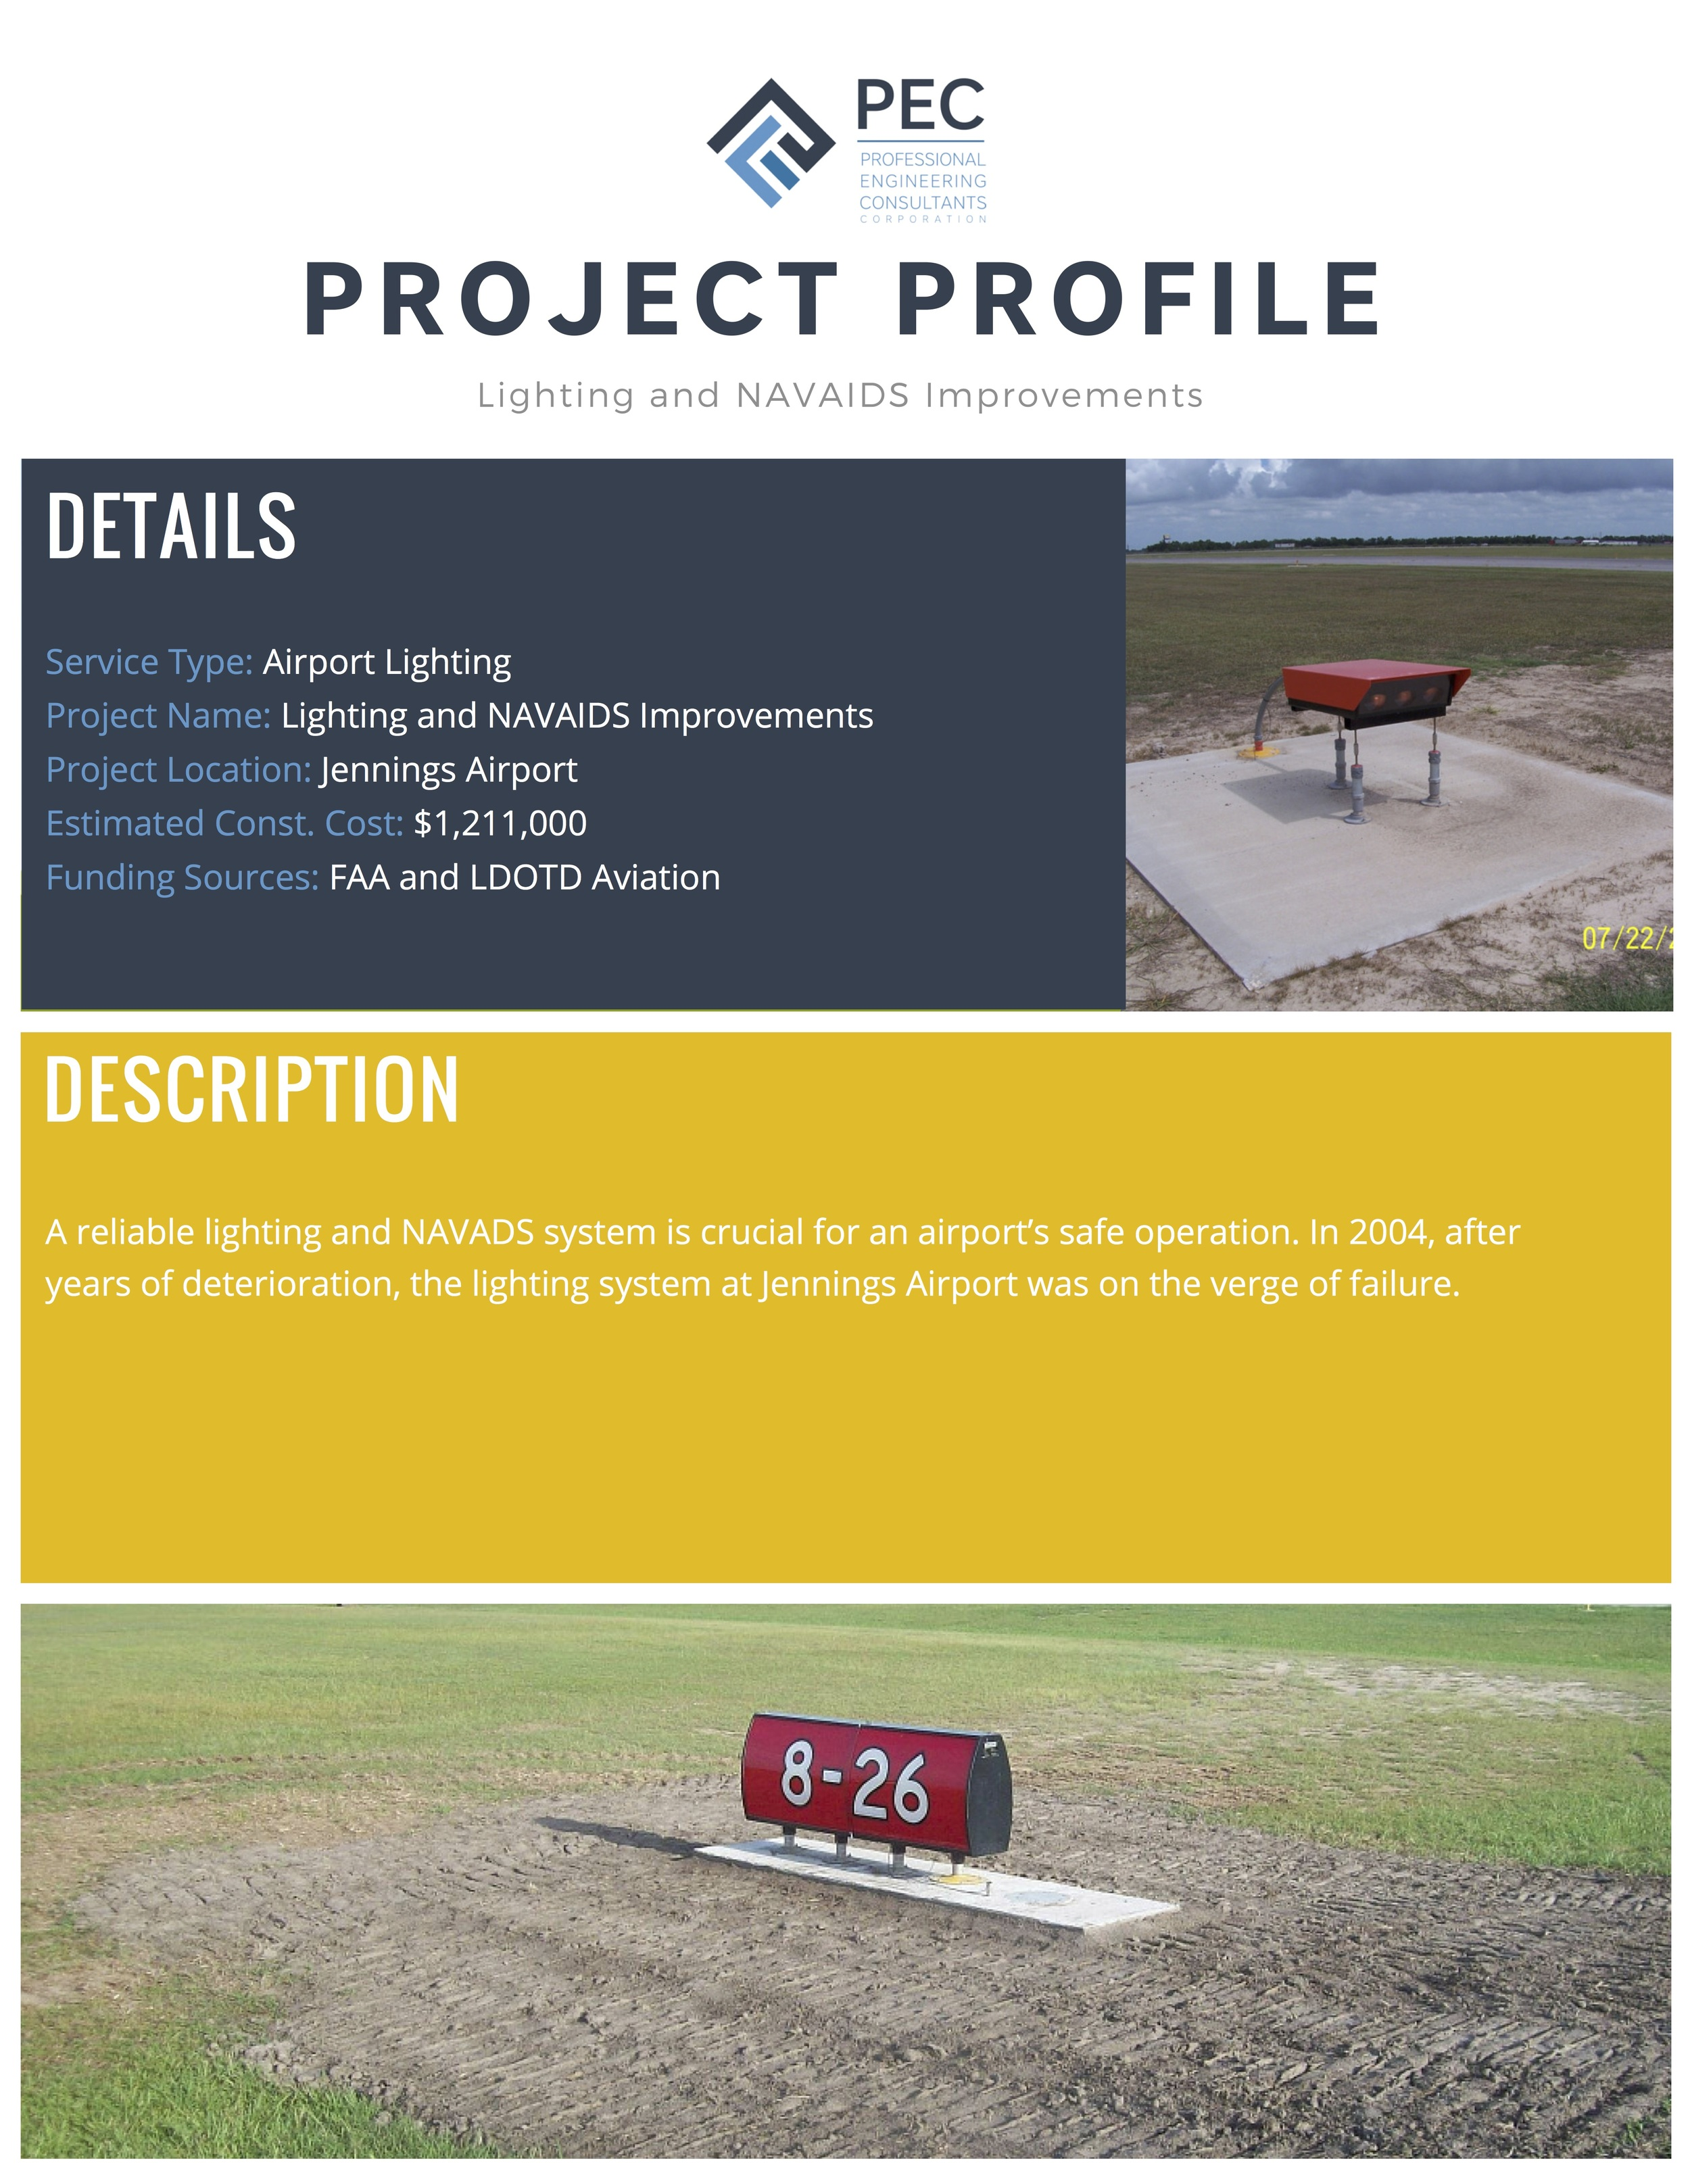 Project Profile_ Lighting and NAVAIDS Improvements FINAL.jpg